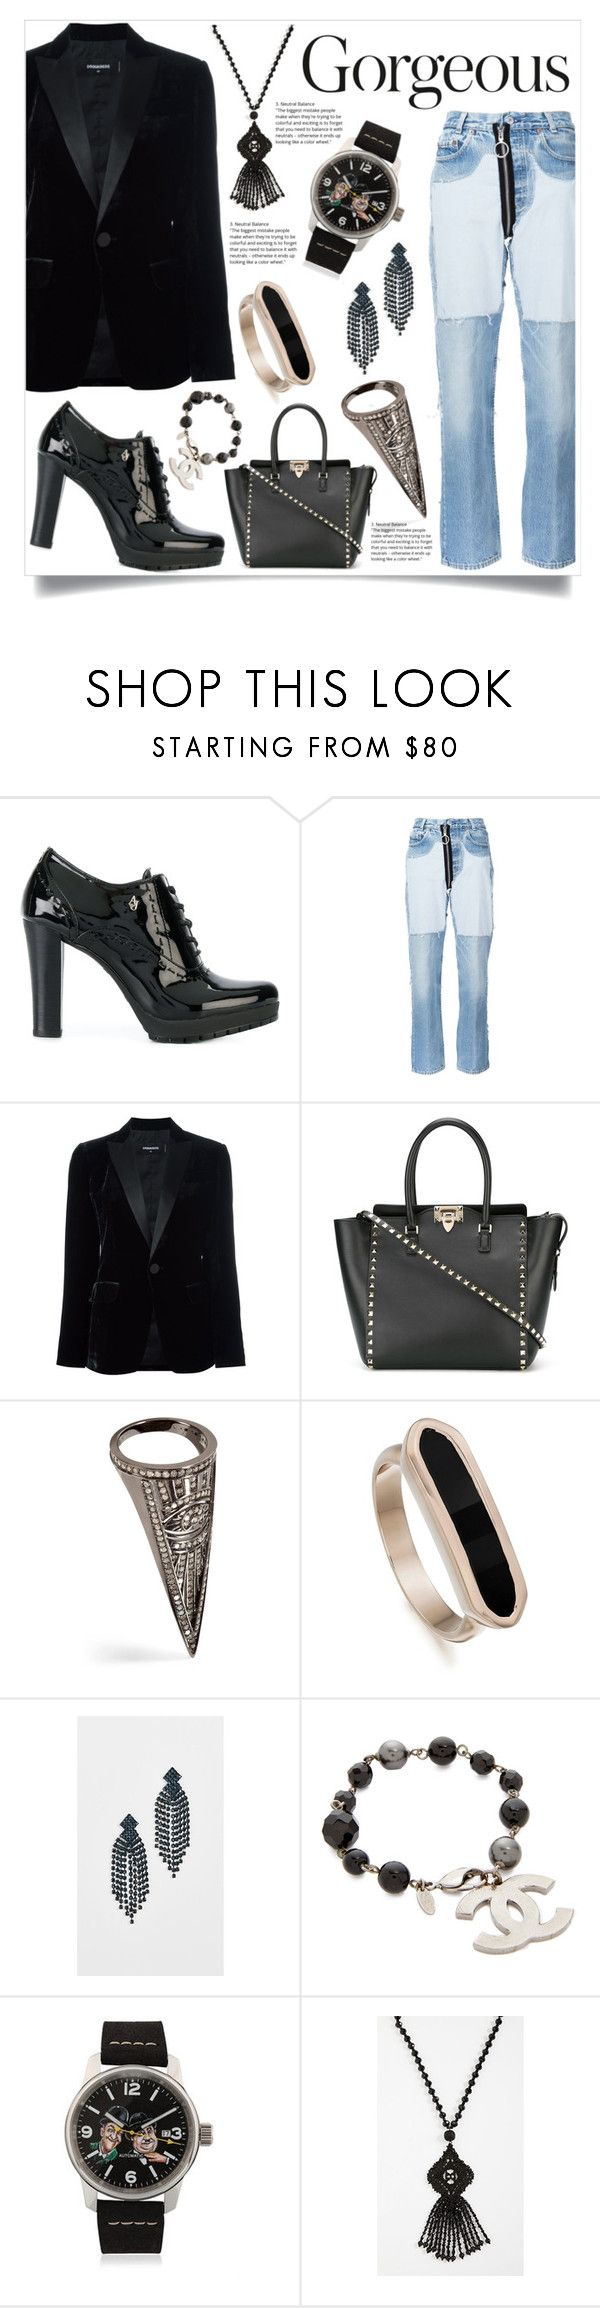 """""""Passion for fashion"""" by justinallison ❤ liked on Polyvore featuring Armani Jeans, Off-White, Dsquared2, Valentino, Lynn Ban, Monica Vinader, Kenneth Jay Lane and Kate Spade"""